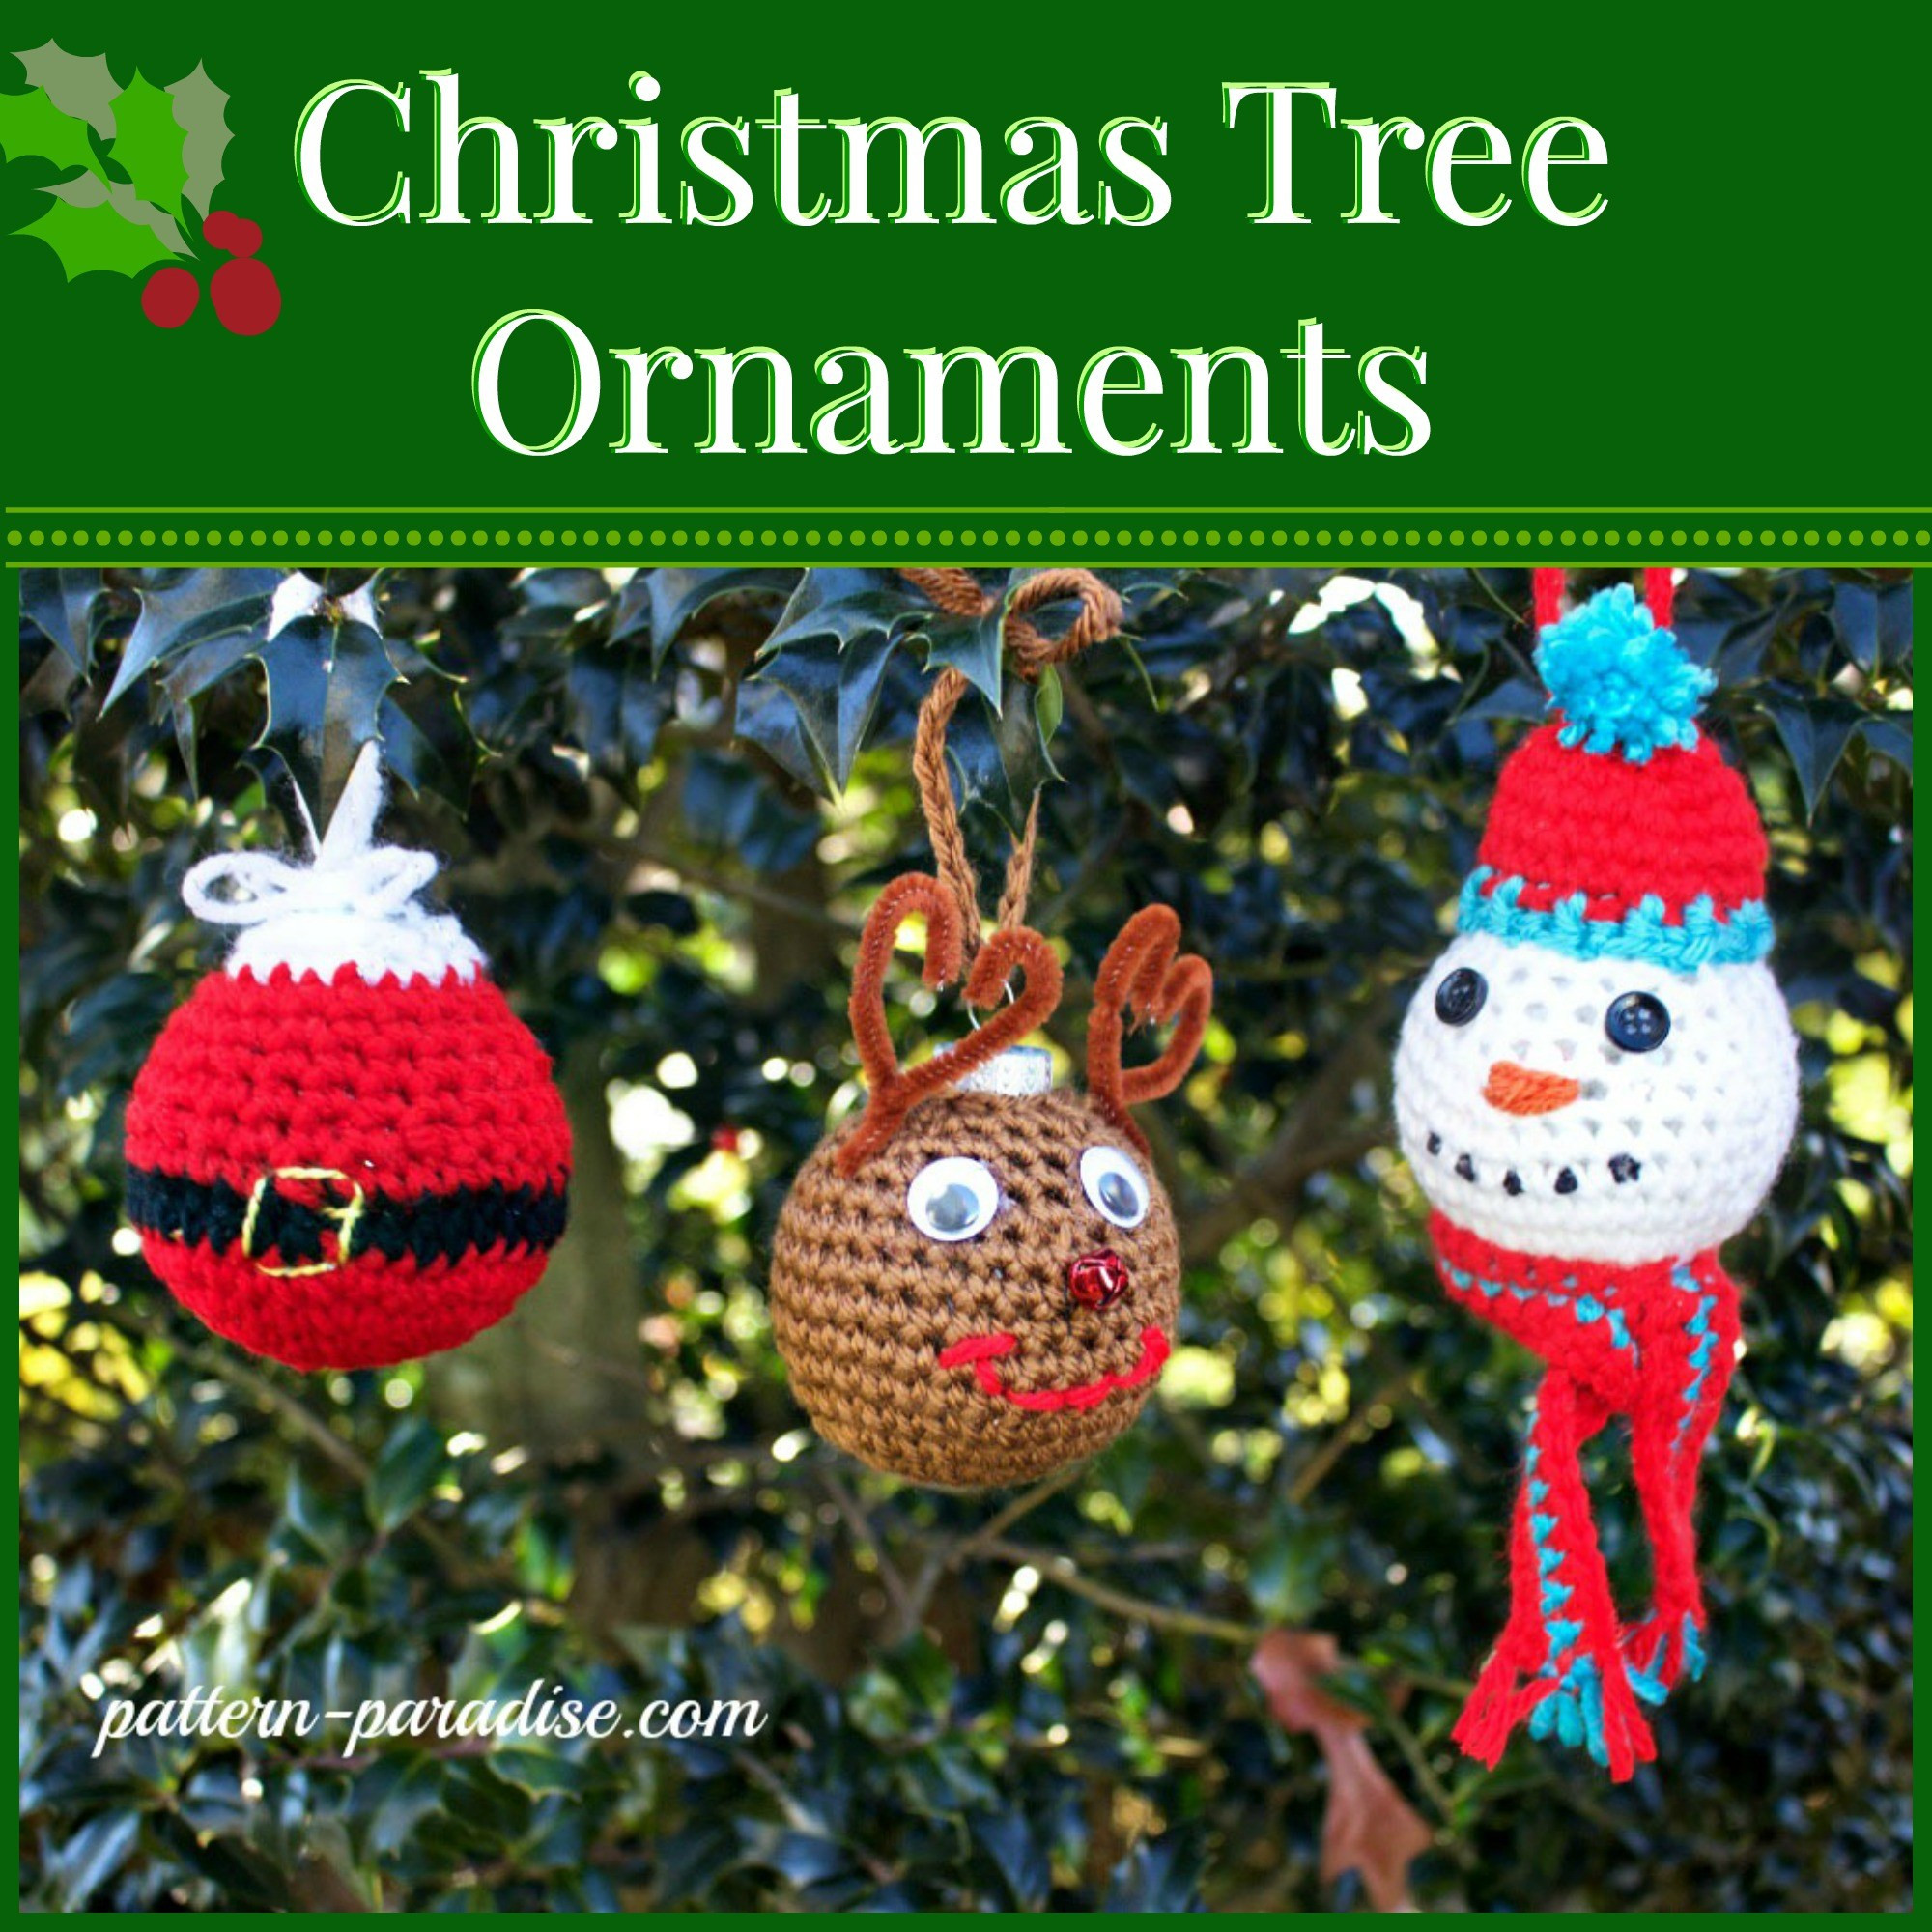 Crochet ornament Inspirational Free Crochet Pattern Christmas Tree ornaments Of Unique 43 Images Crochet ornament